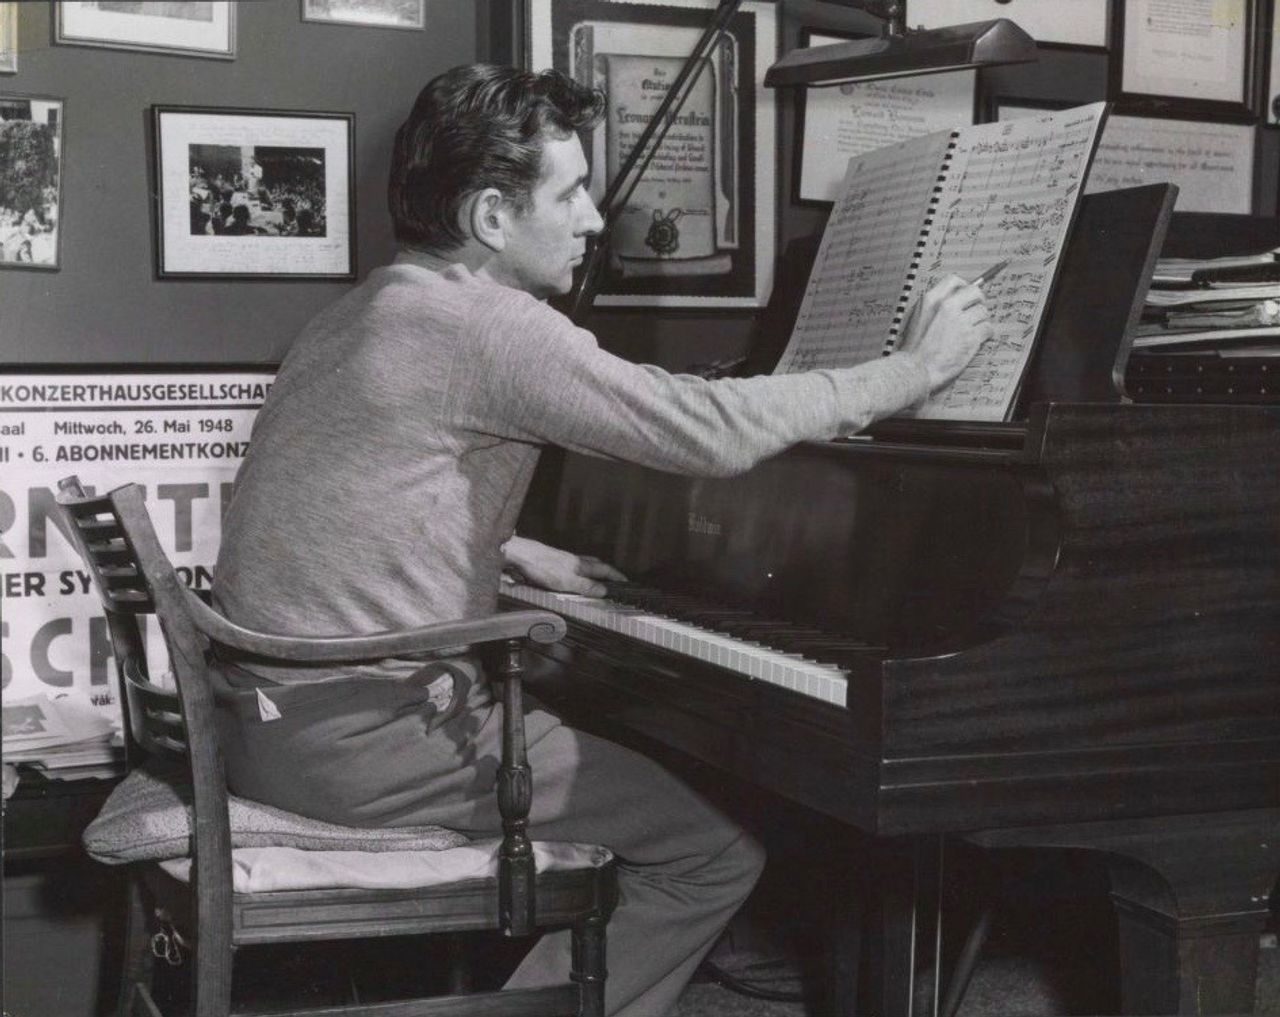 Leonard Bernstein working on a score at his piano, 1956